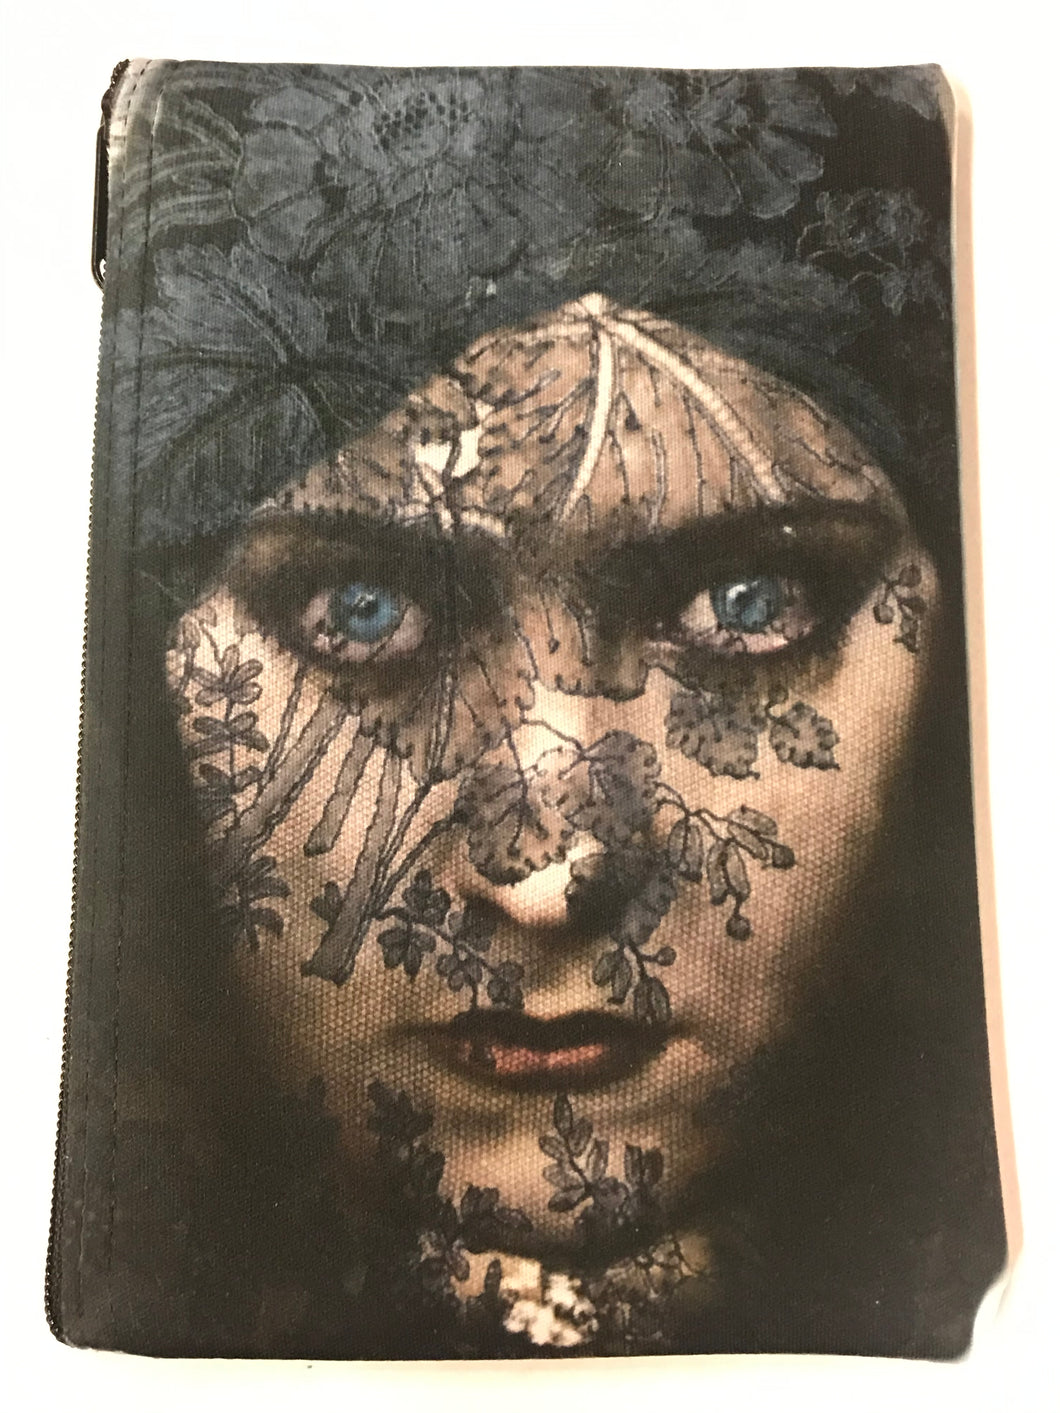 Blue Eyed Woman With Lace Veil Print Pouch